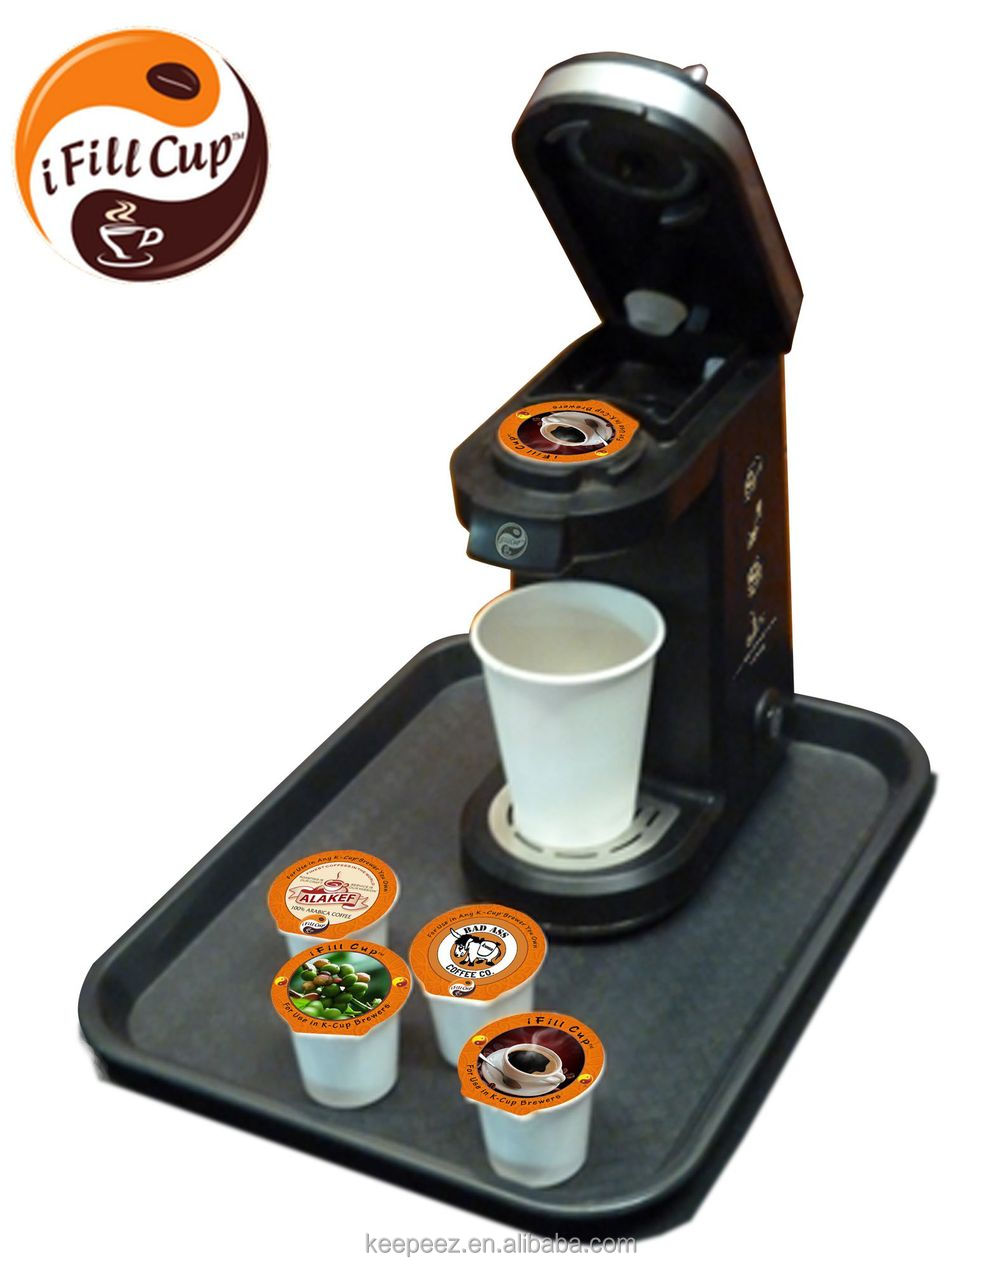 Electronic Keurig Coffee Machine Price 2015 new k cups hotel products keurig coffee machine low price buy cup compatible with makernew single serve brewe